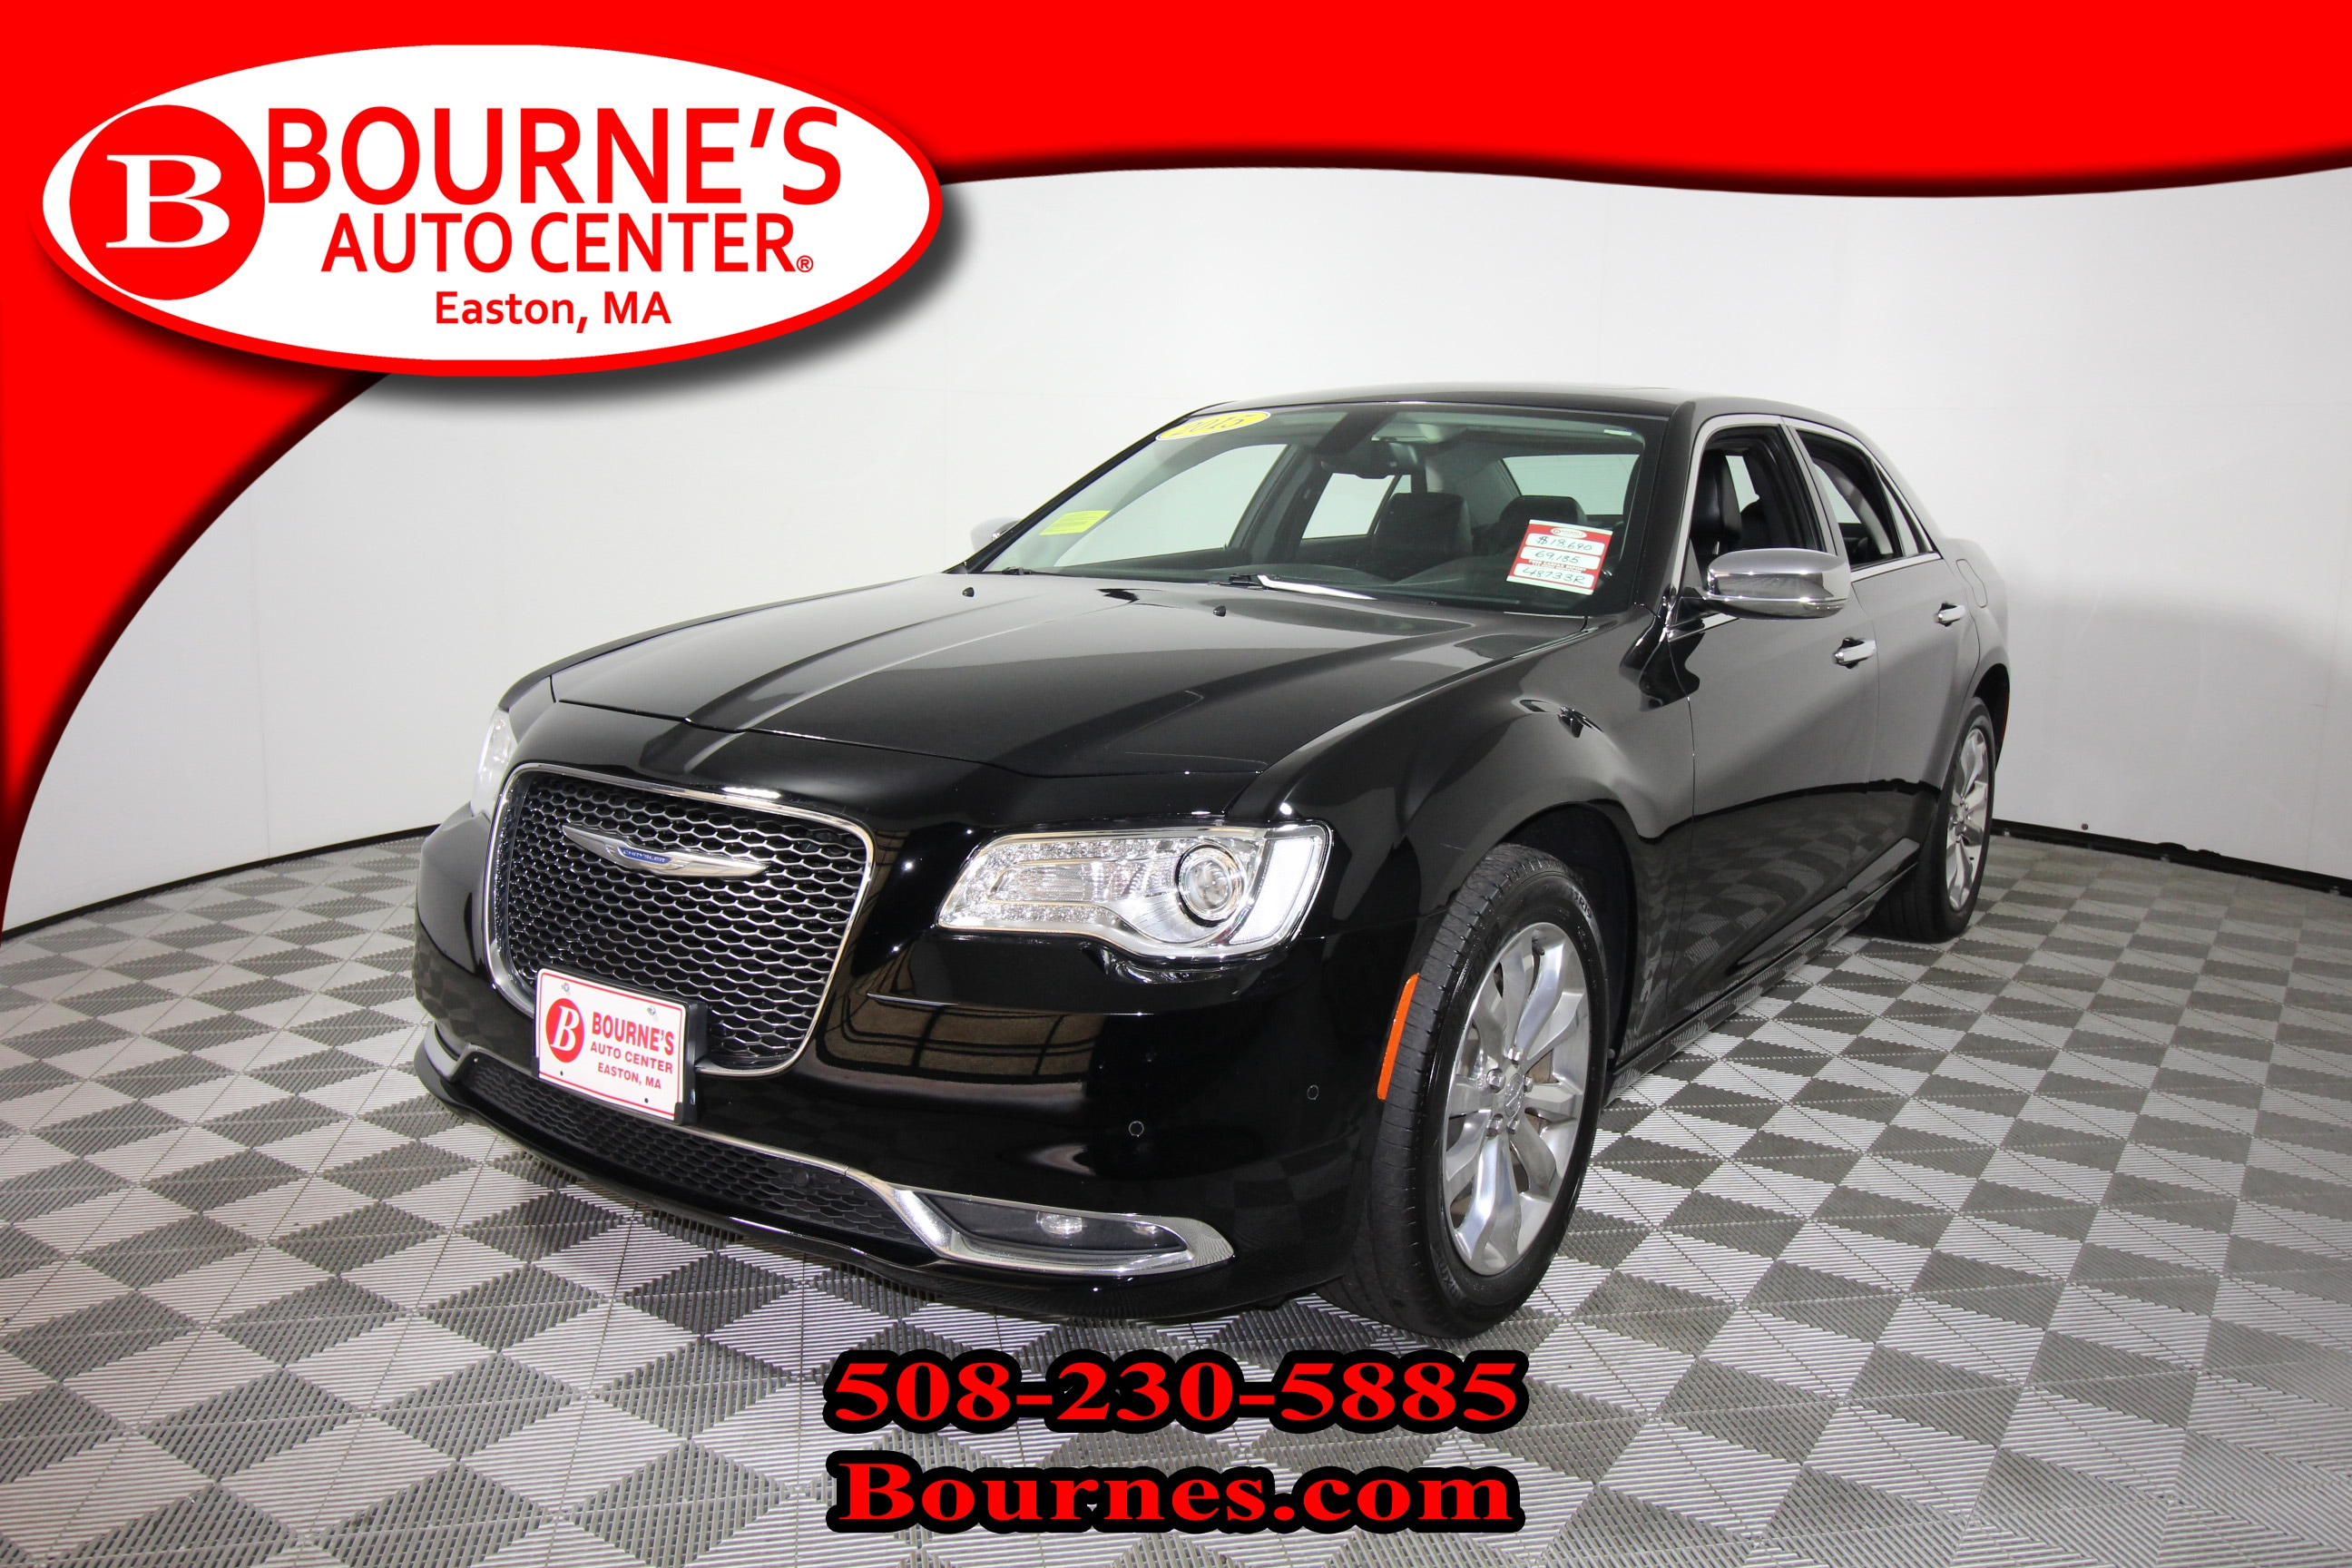 2015 Chrysler 300C AWD w/Navigation,Leather,Sunroof,Heated/Cooled Fro Sedan